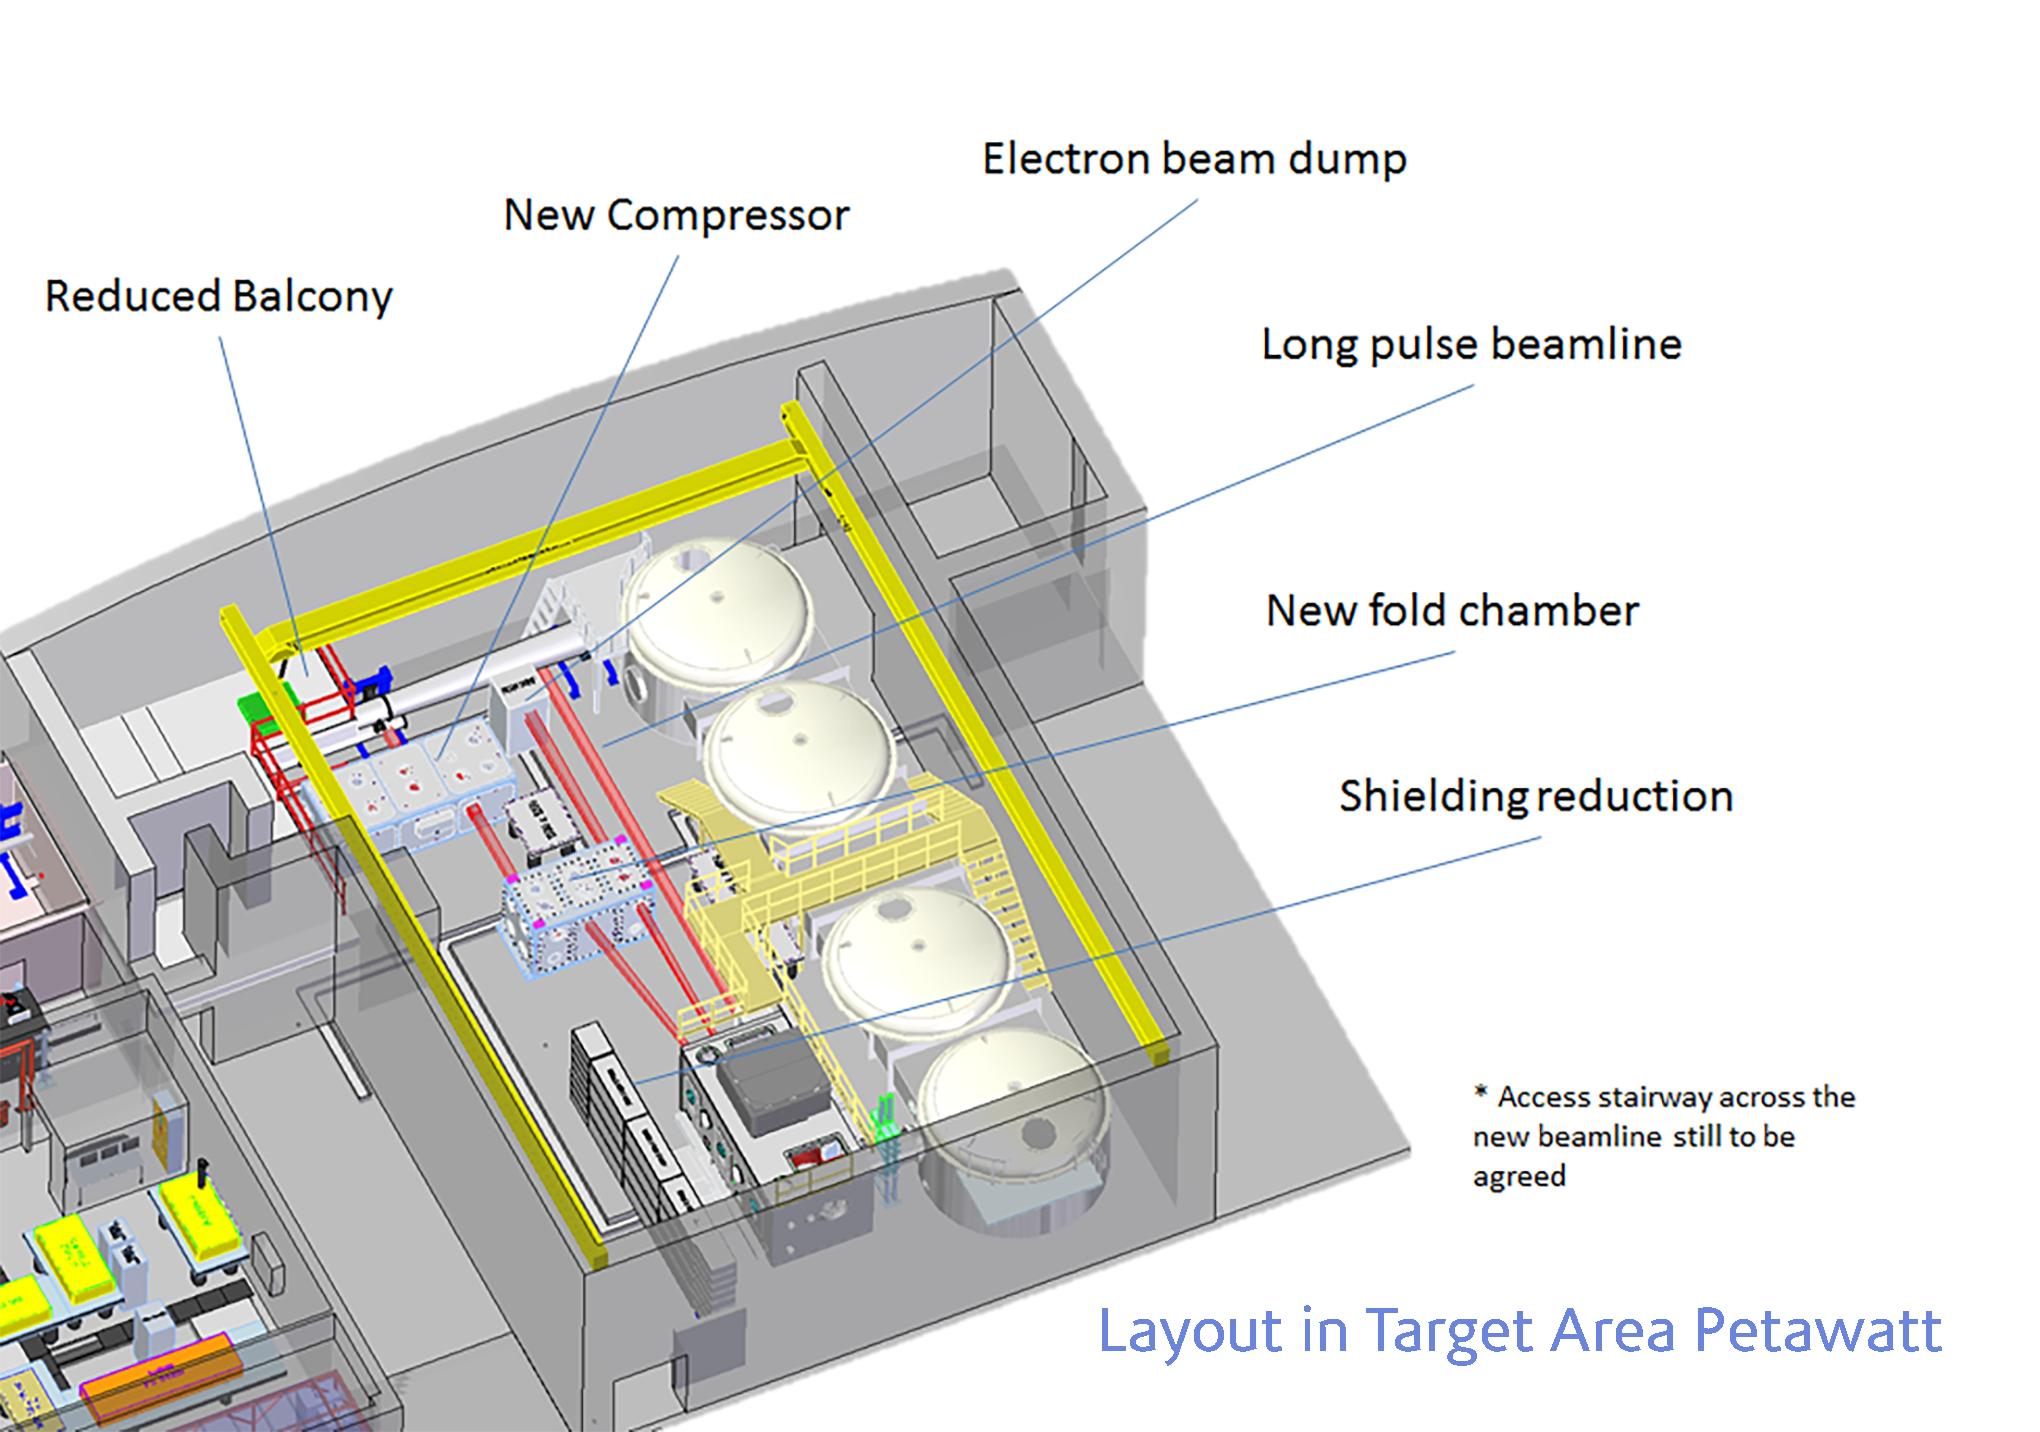 vulcan beamlines project image 3.png